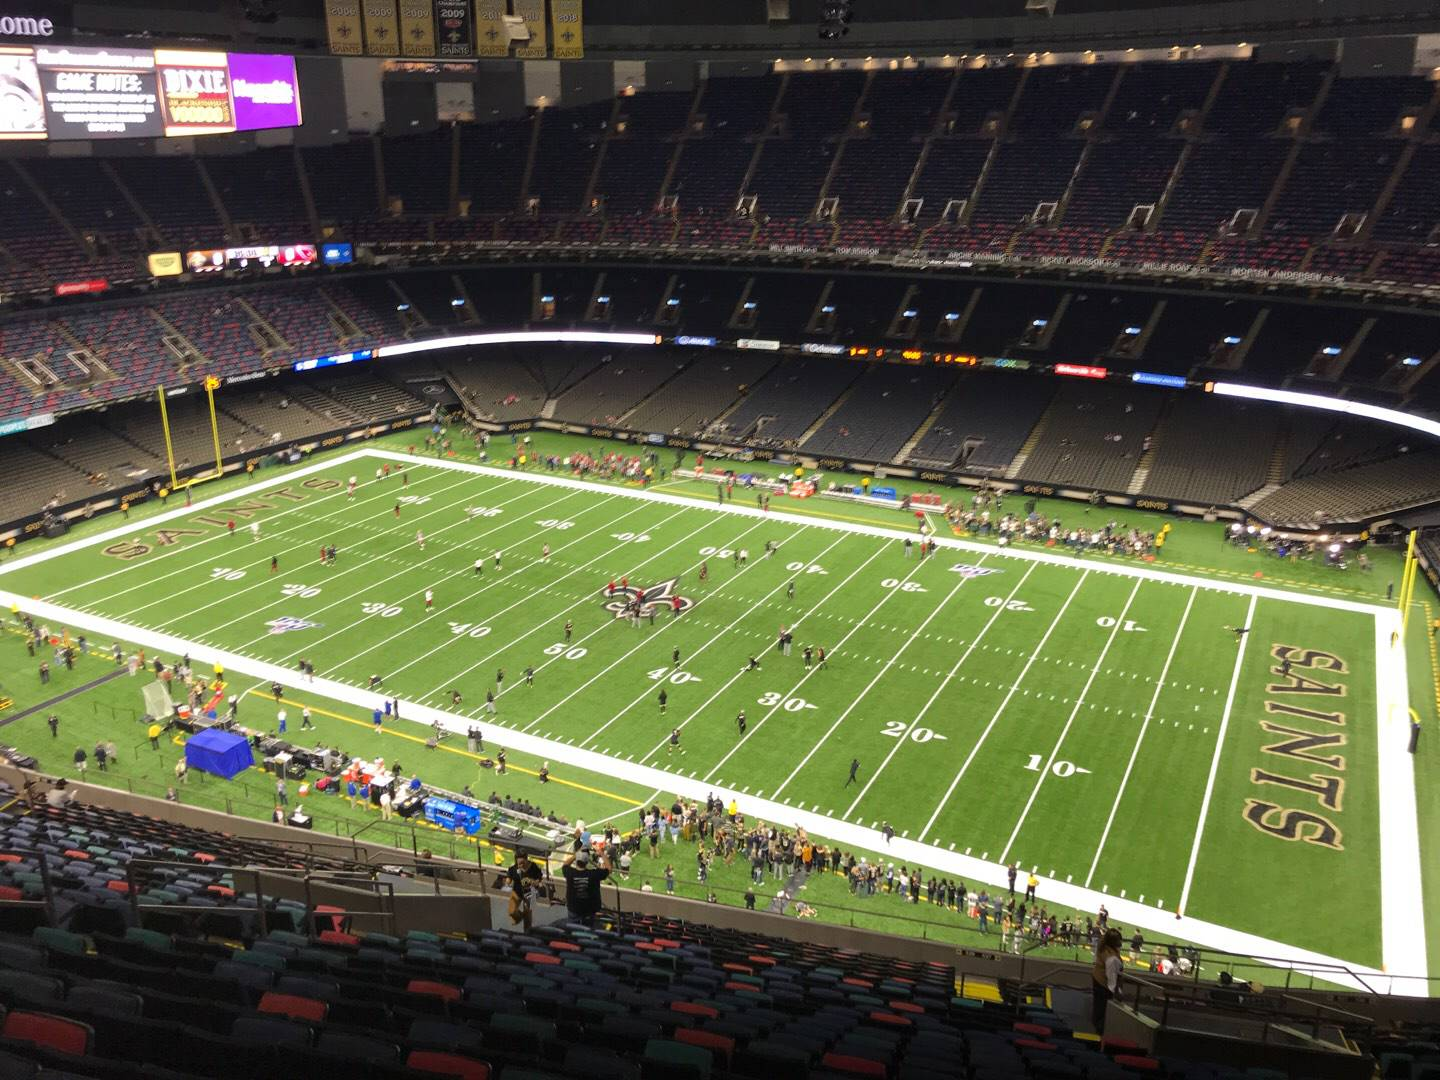 Mercedes-Benz Superdome Section 626 Row 26 Seat 10